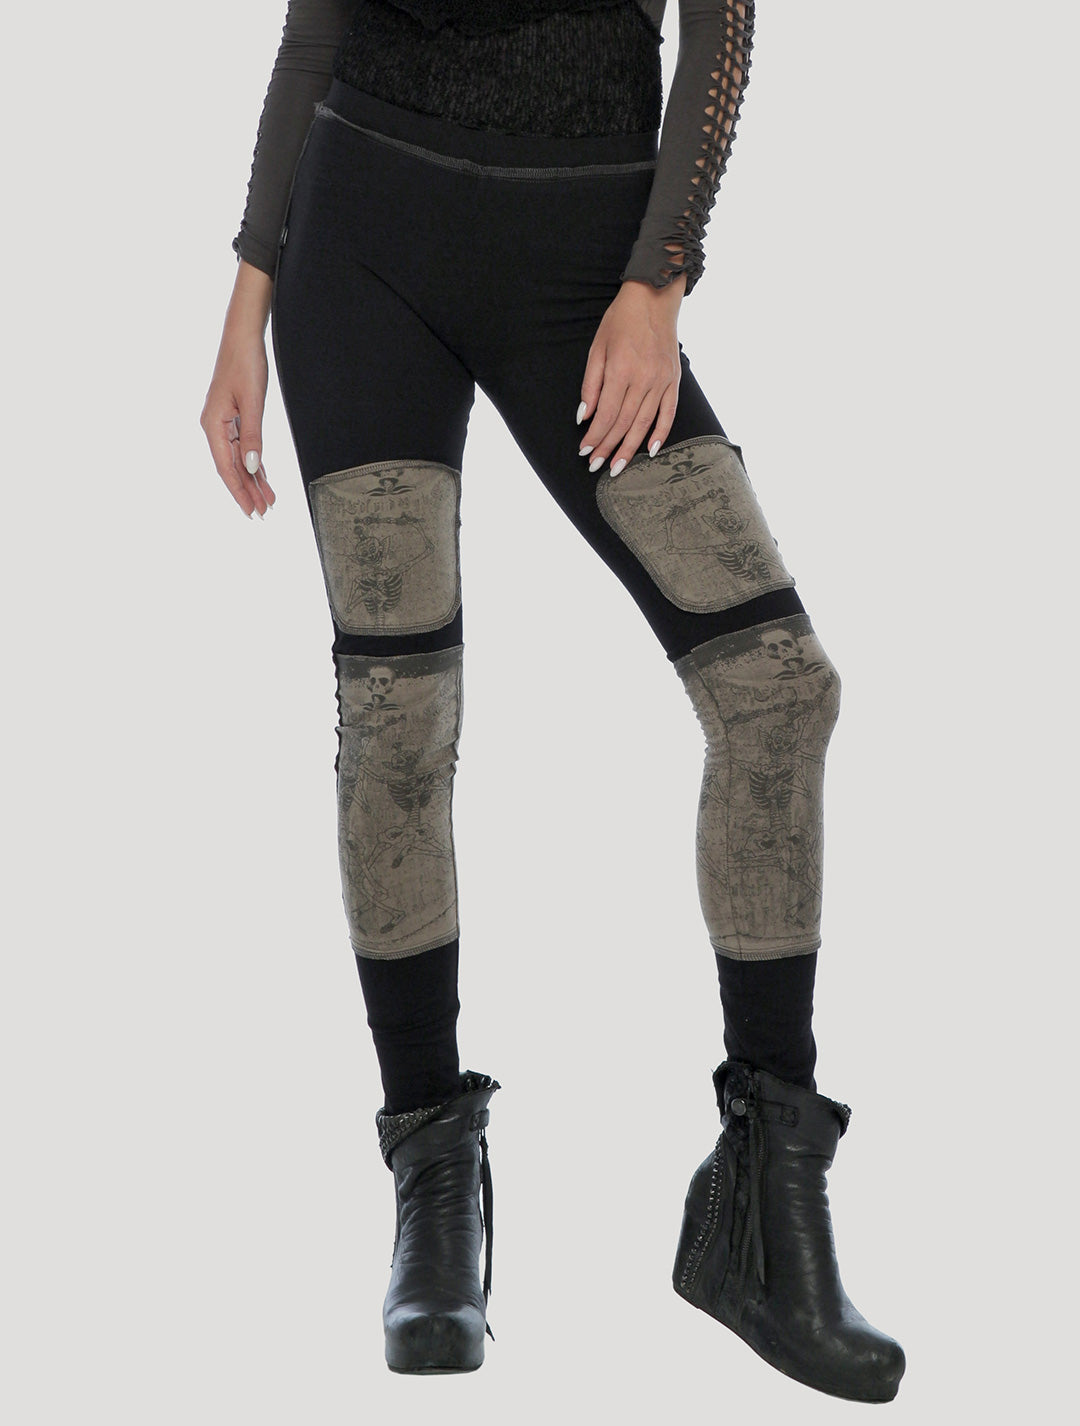 Tibetan Skulls Long Leggings by Psylo Fashion